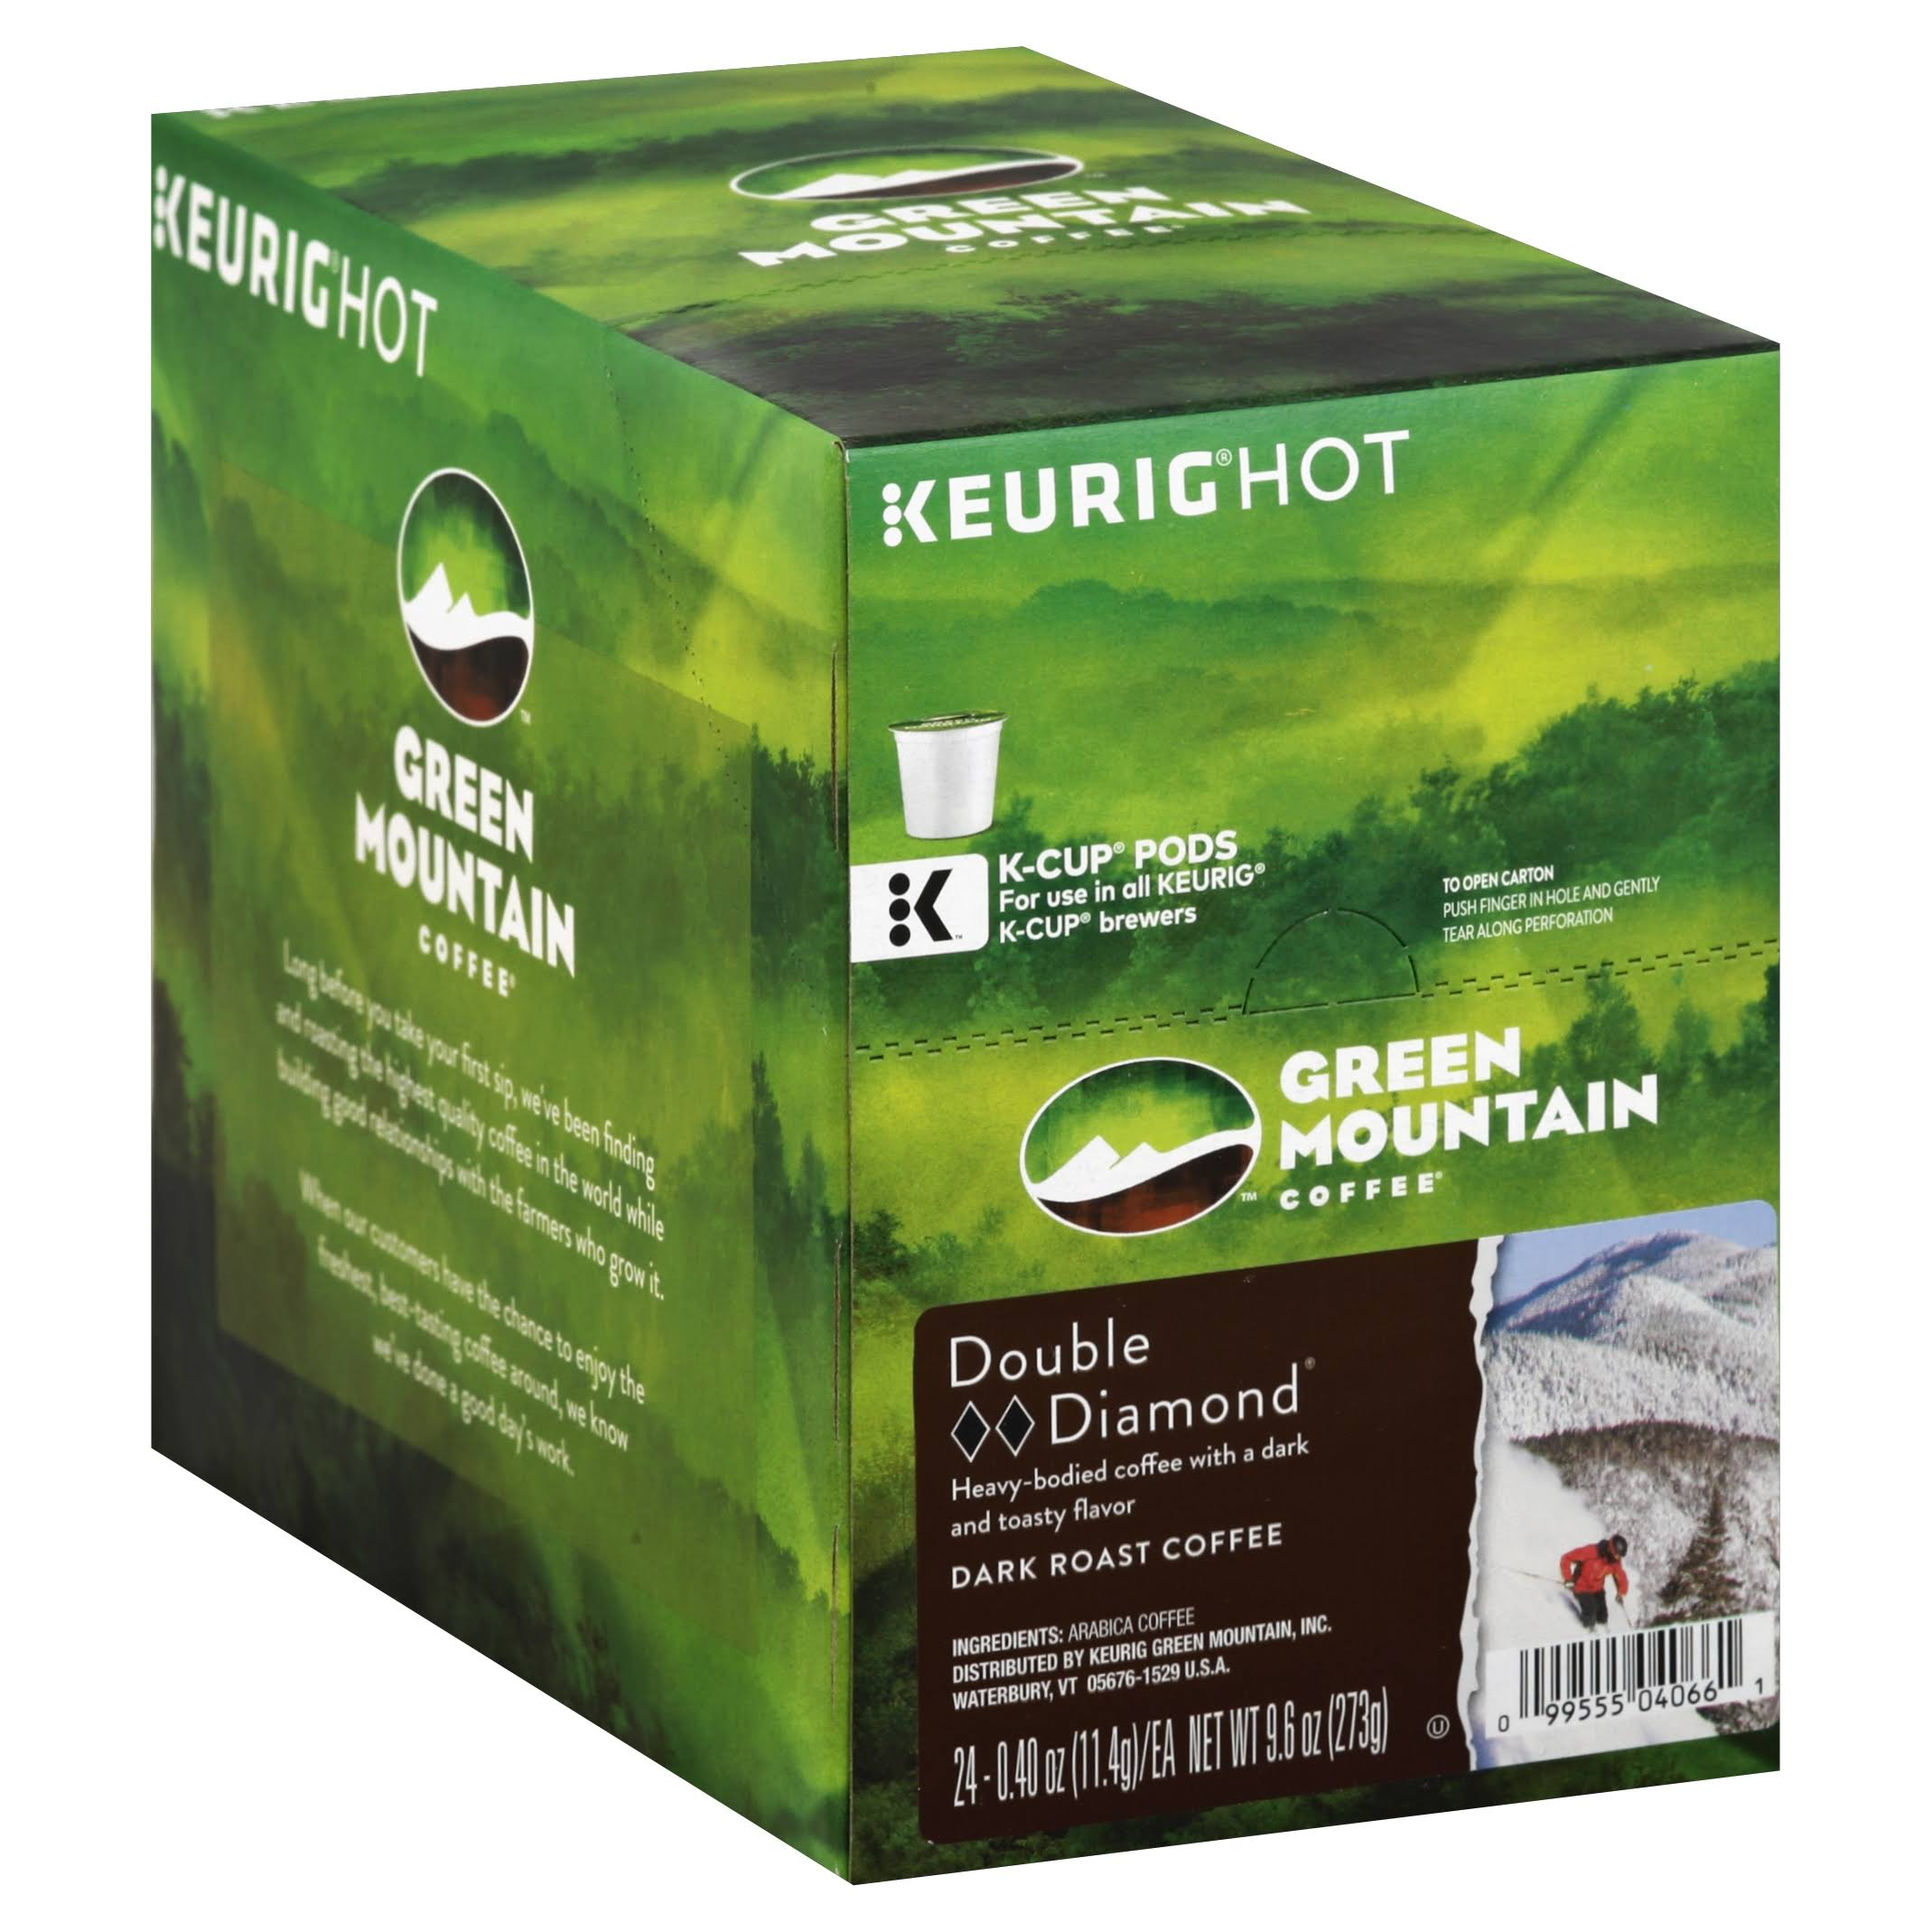 Green Mountain Double Black Diamond K-cup Coffee - Extra Bold, 24ct